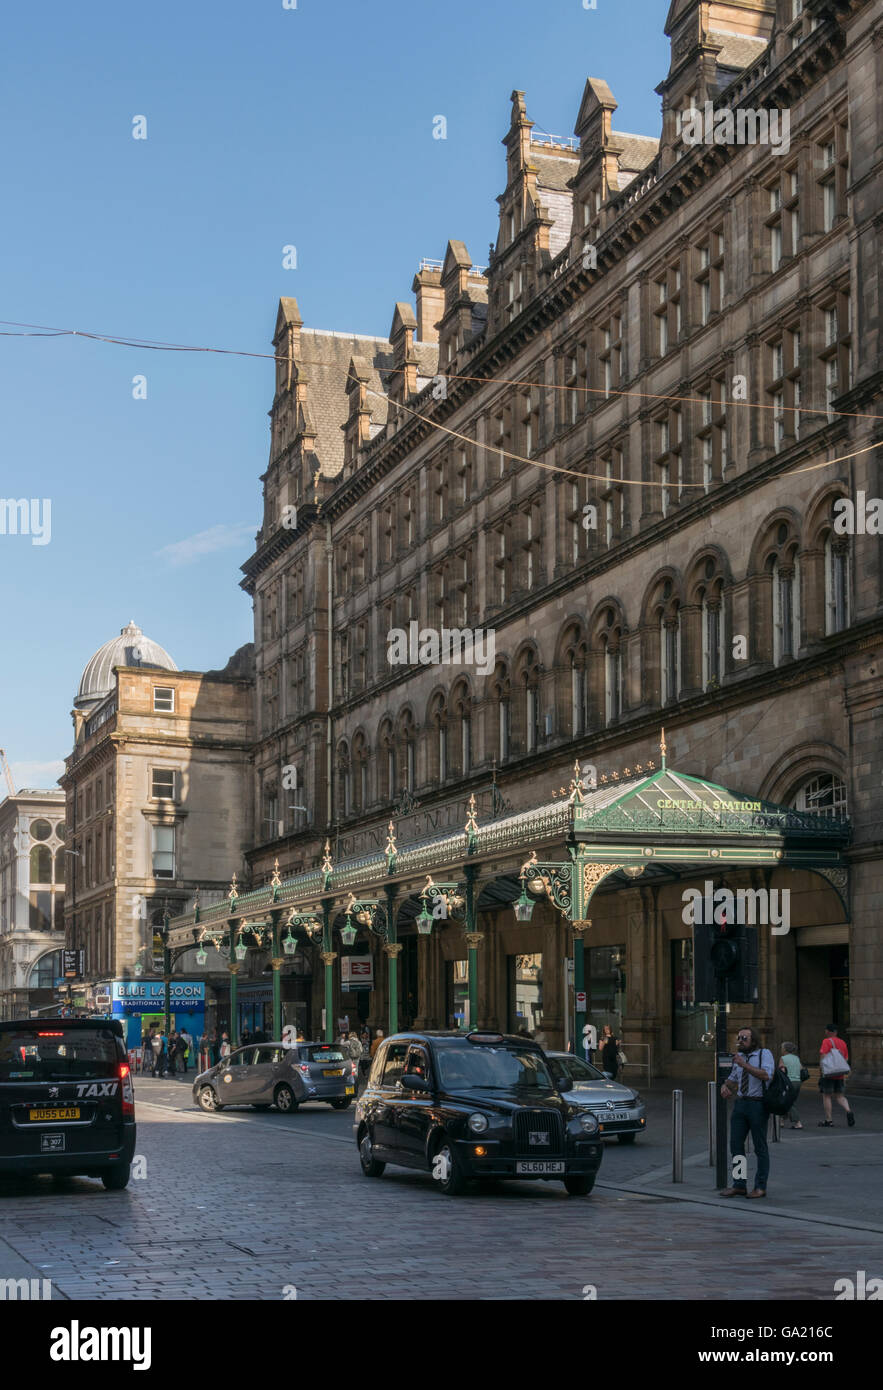 Entrance to Central Station,Gordon Street,Glasgow,Scotland,UK, - Stock Image